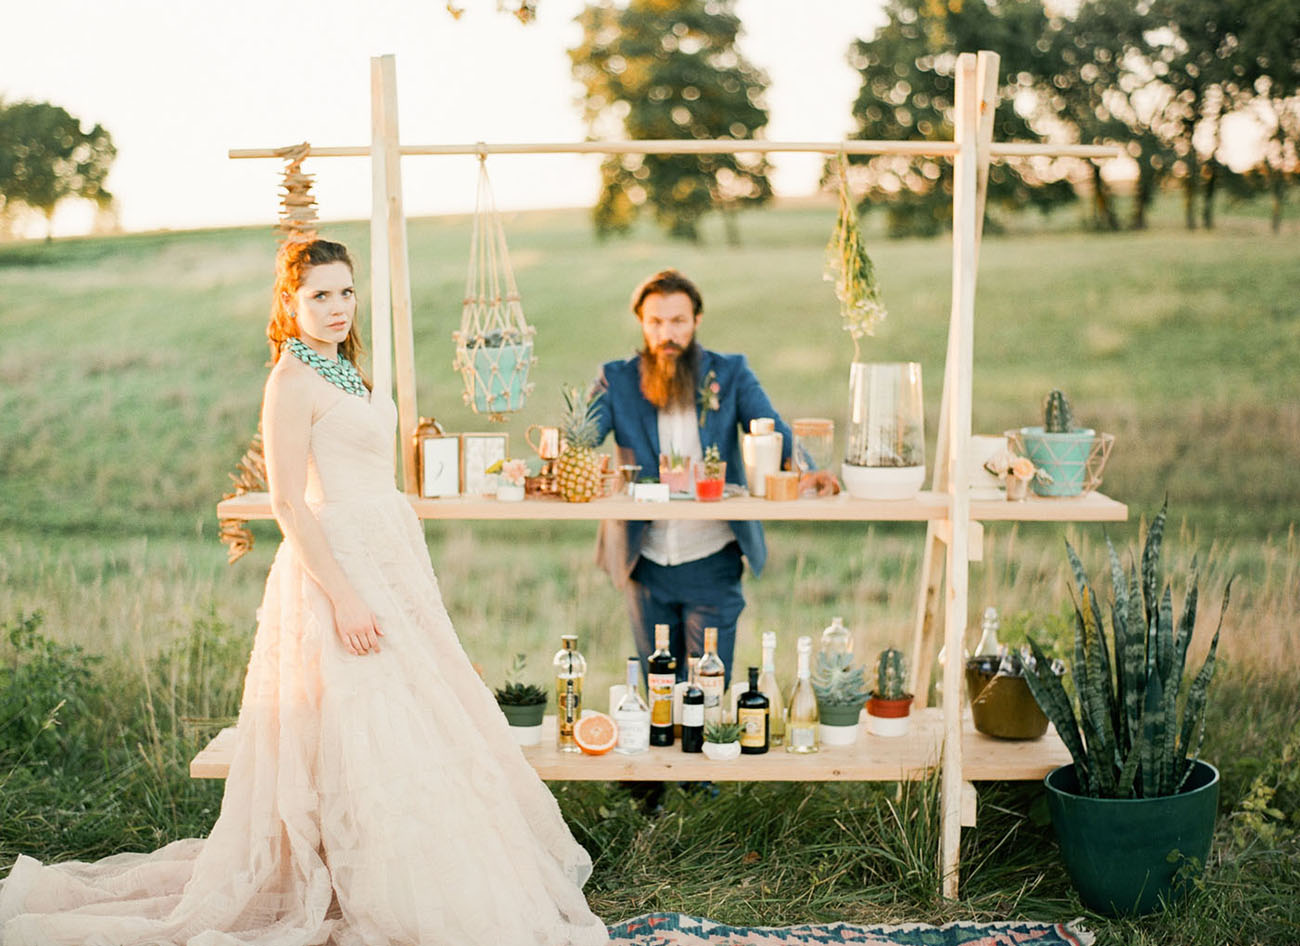 The wedding bar was created by Adan, it was simple, chic and boho